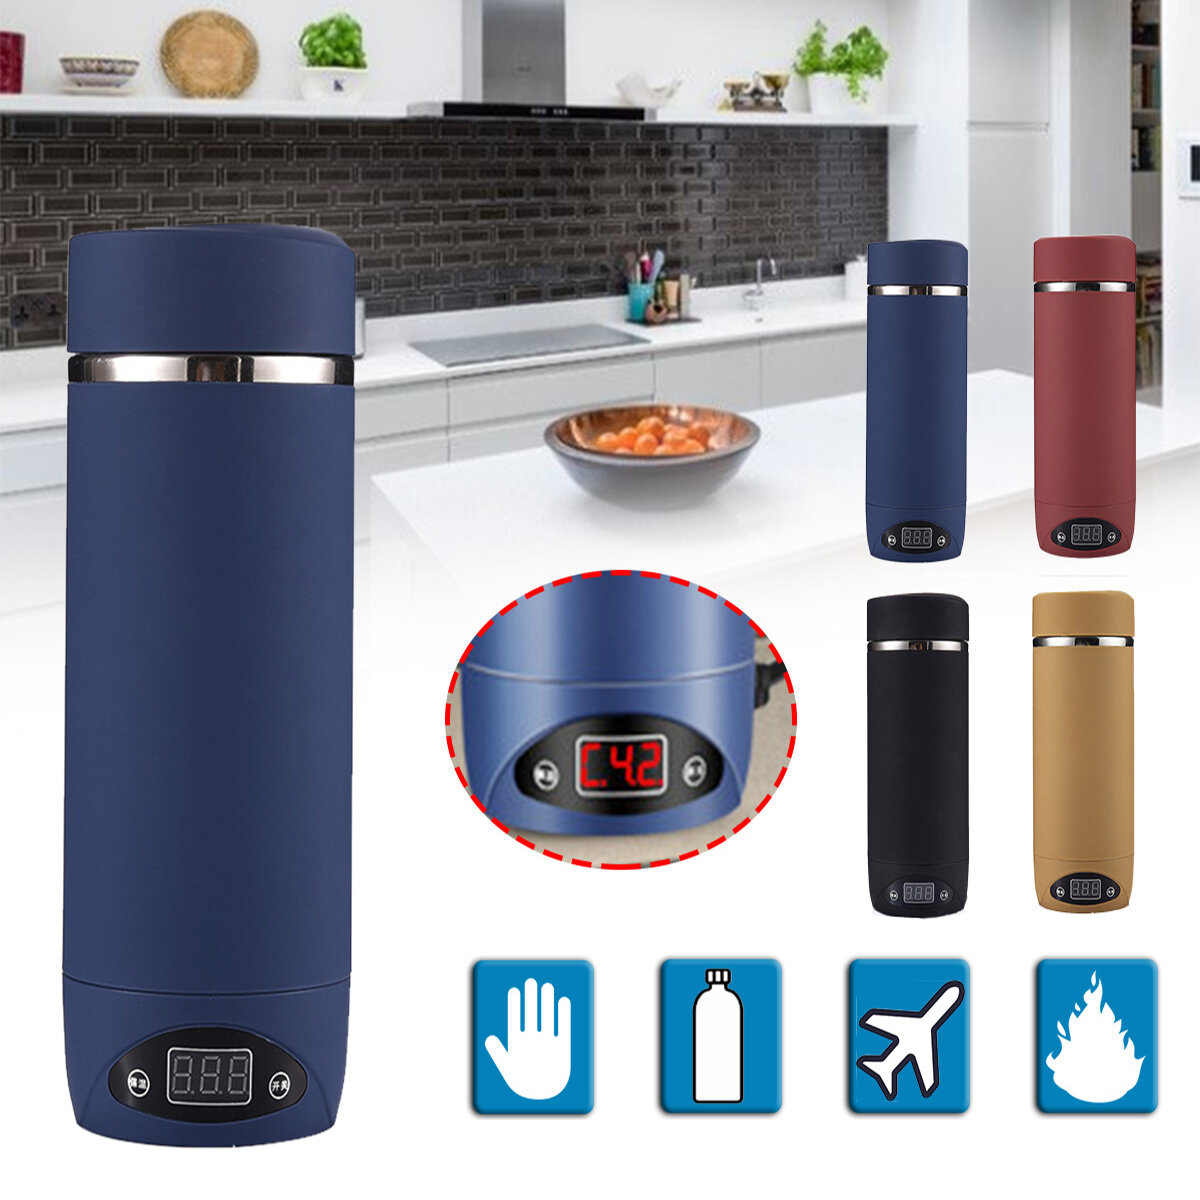 420ML Vacuum Insulated Bottles Outdoor Camping Hiking Traveling Boiling Mug Electric Kettle Heating Cup